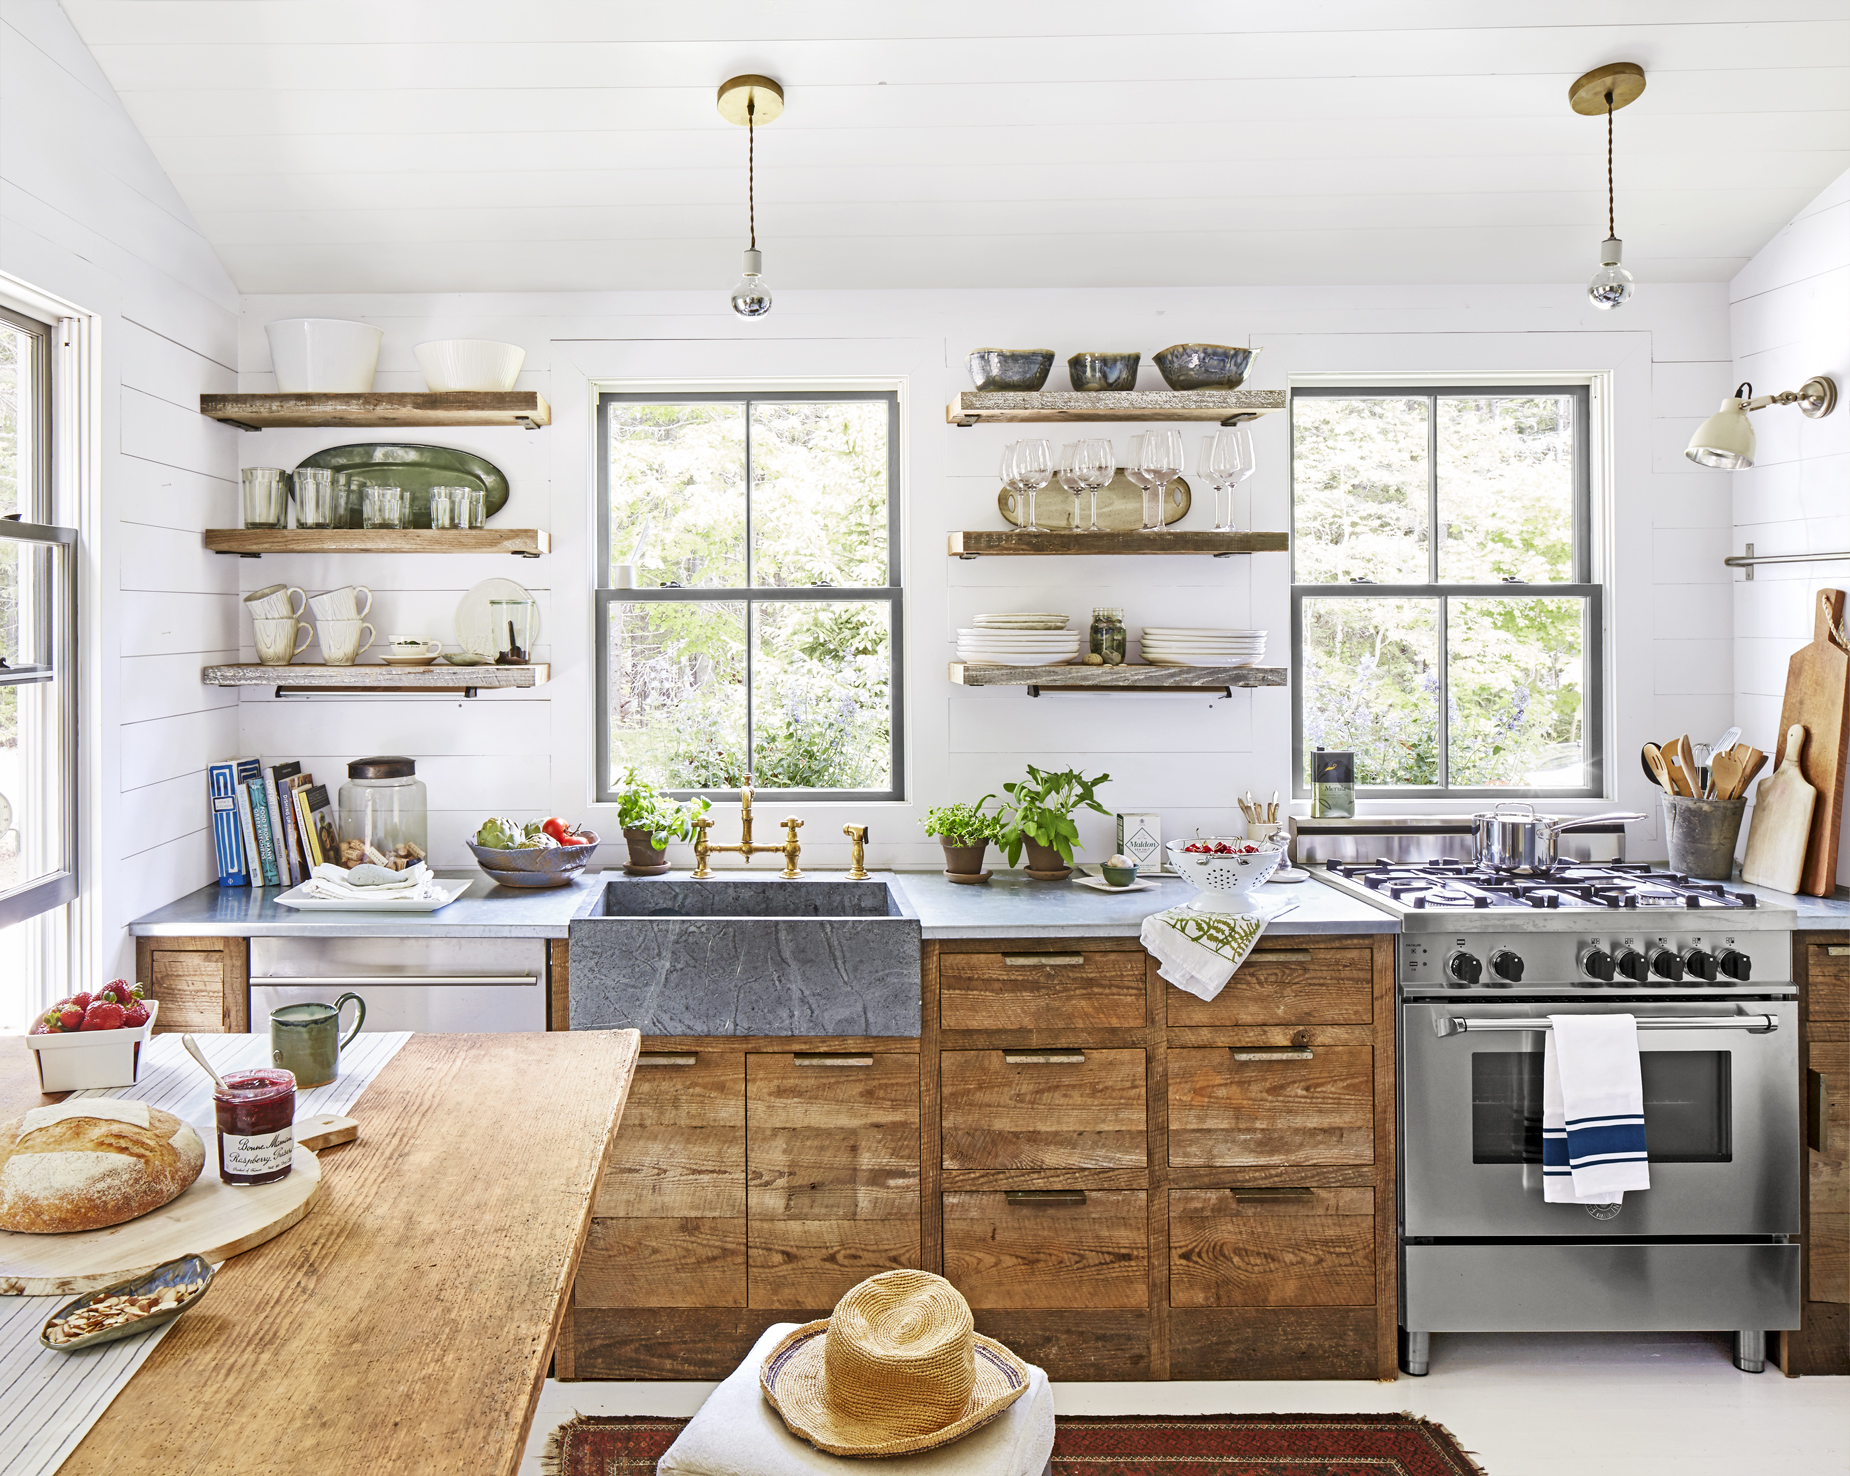 kitchen design ideas pictures of country kitchen decorating inspiration